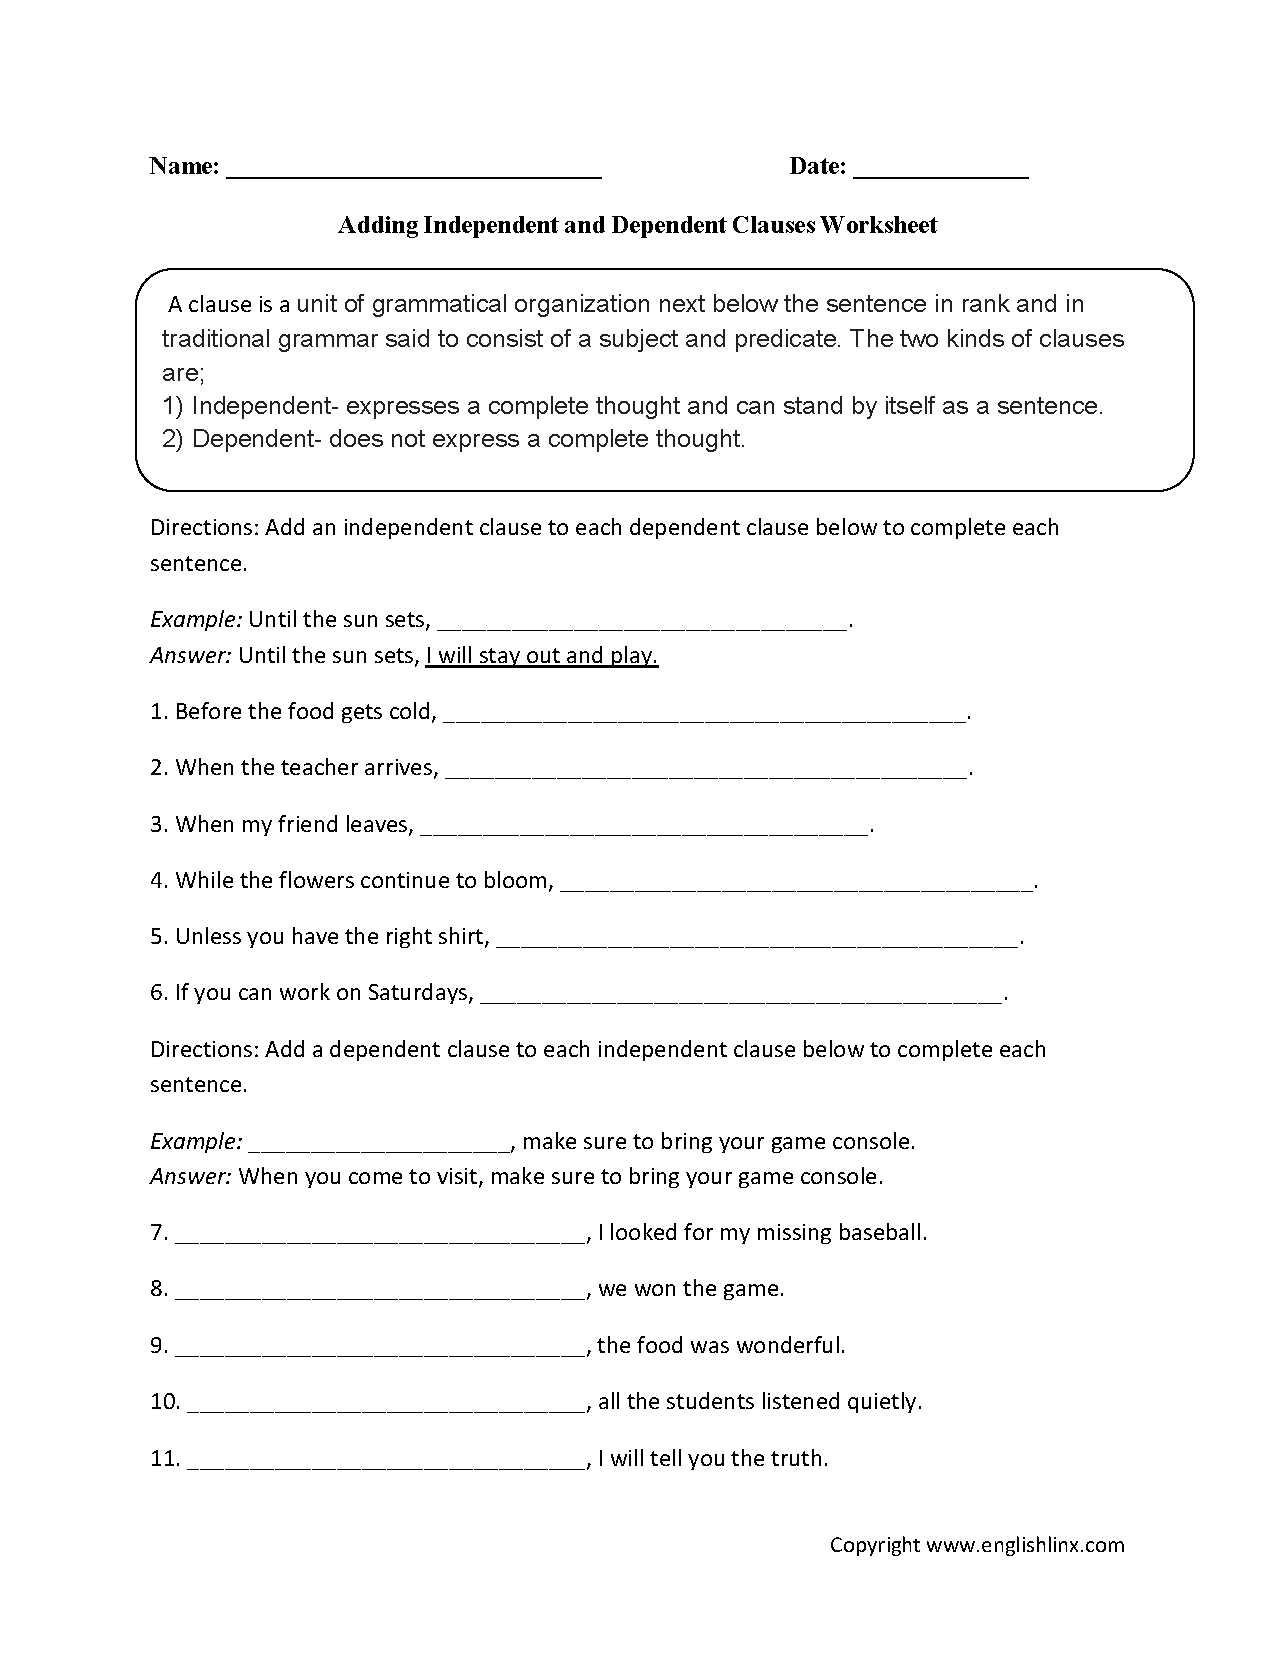 Adding An Independent Clause Worksheet Englishlinx